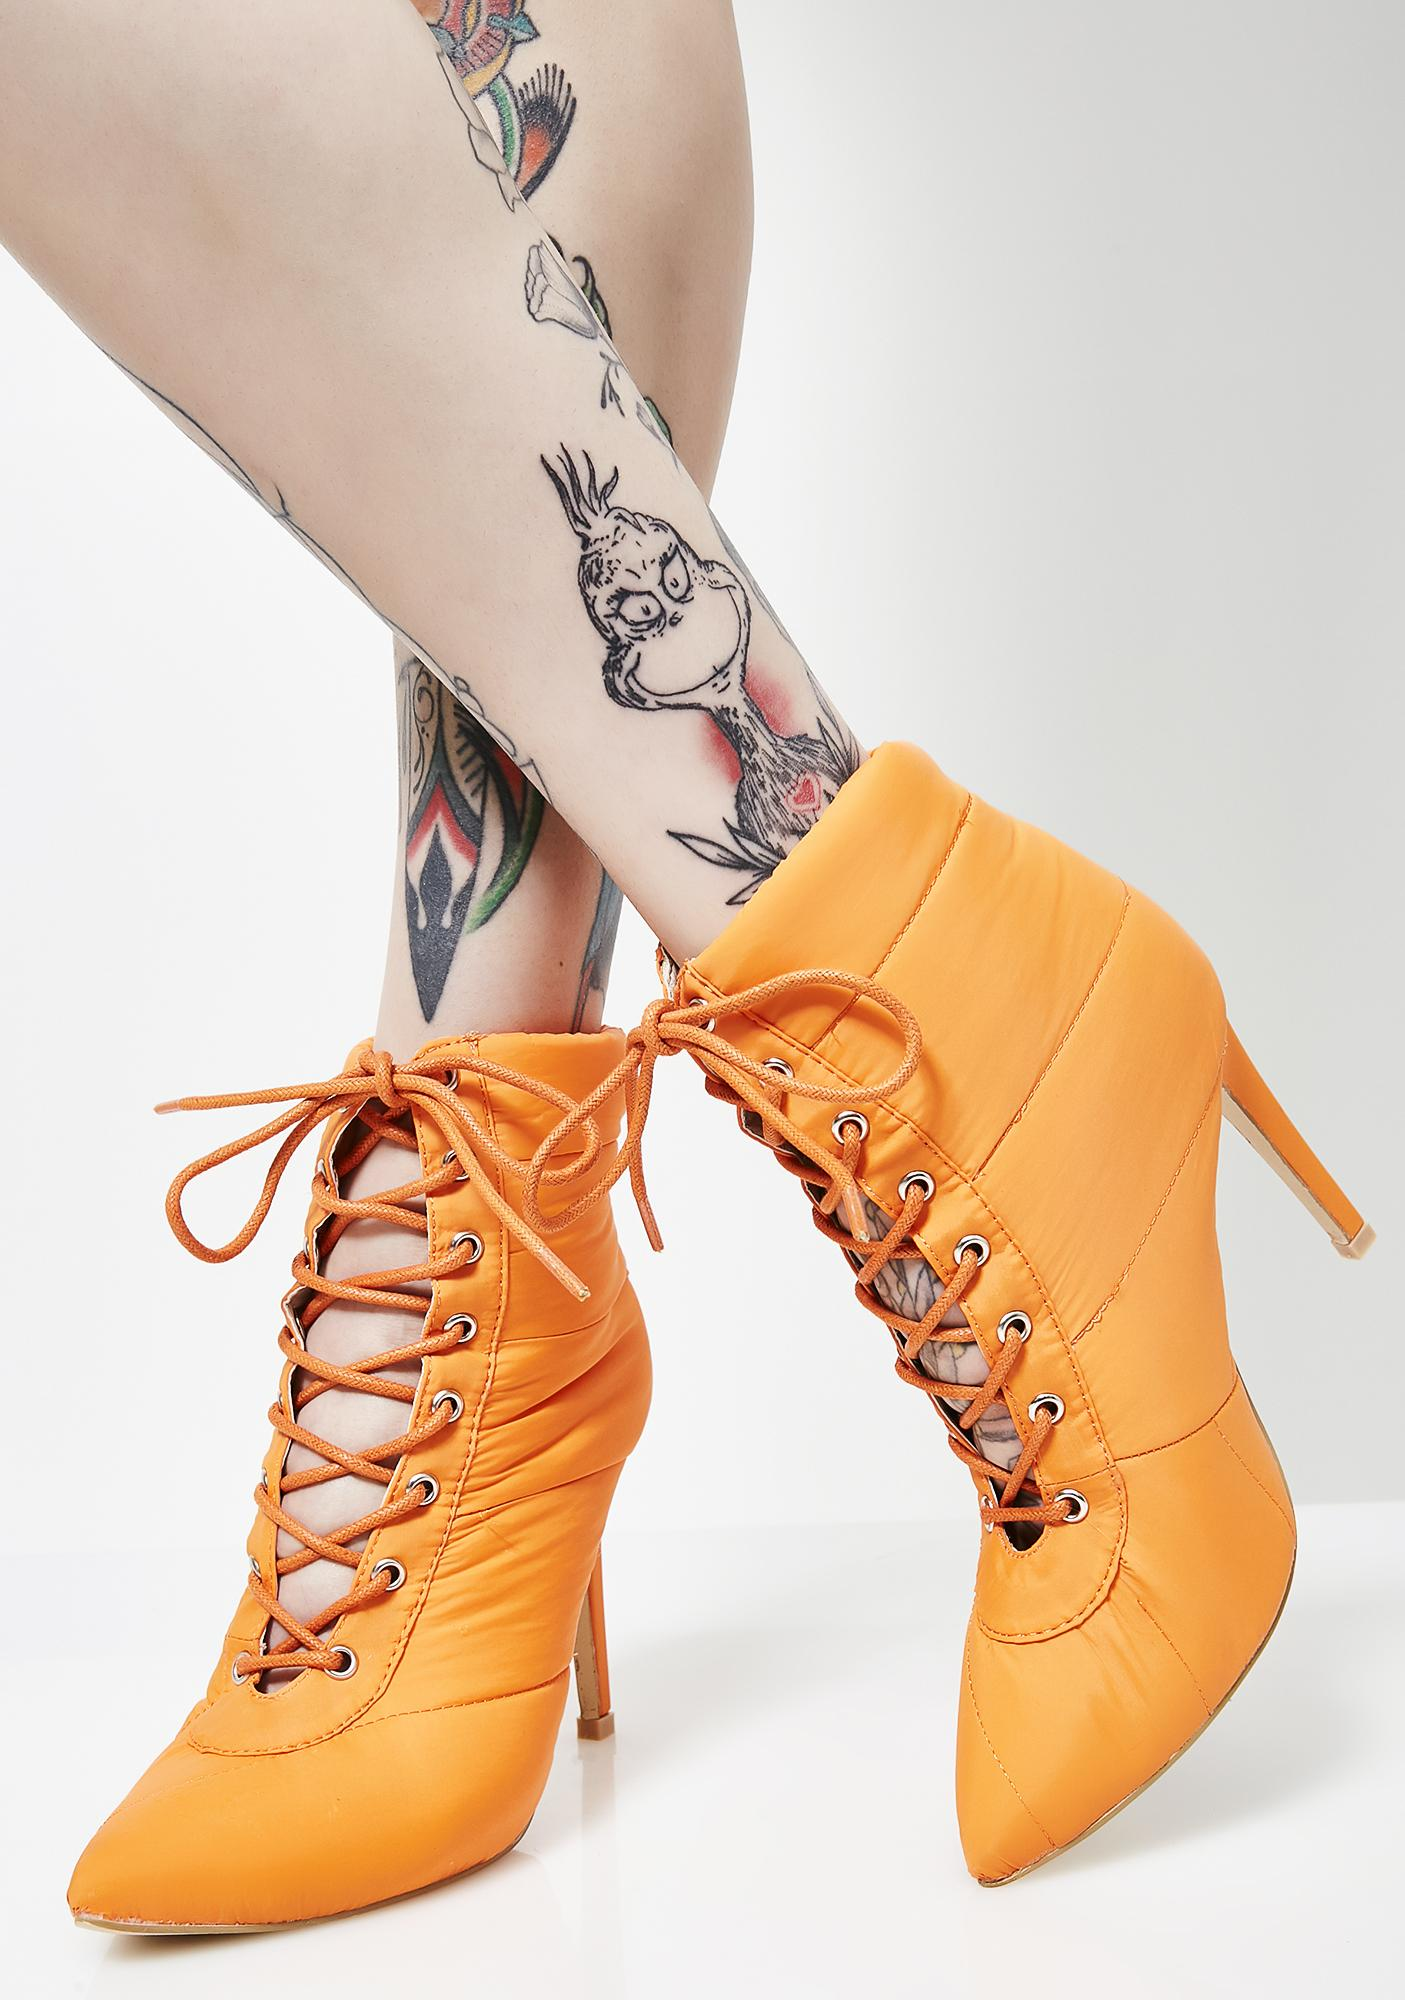 Spicy Street Cred Ankle Boots